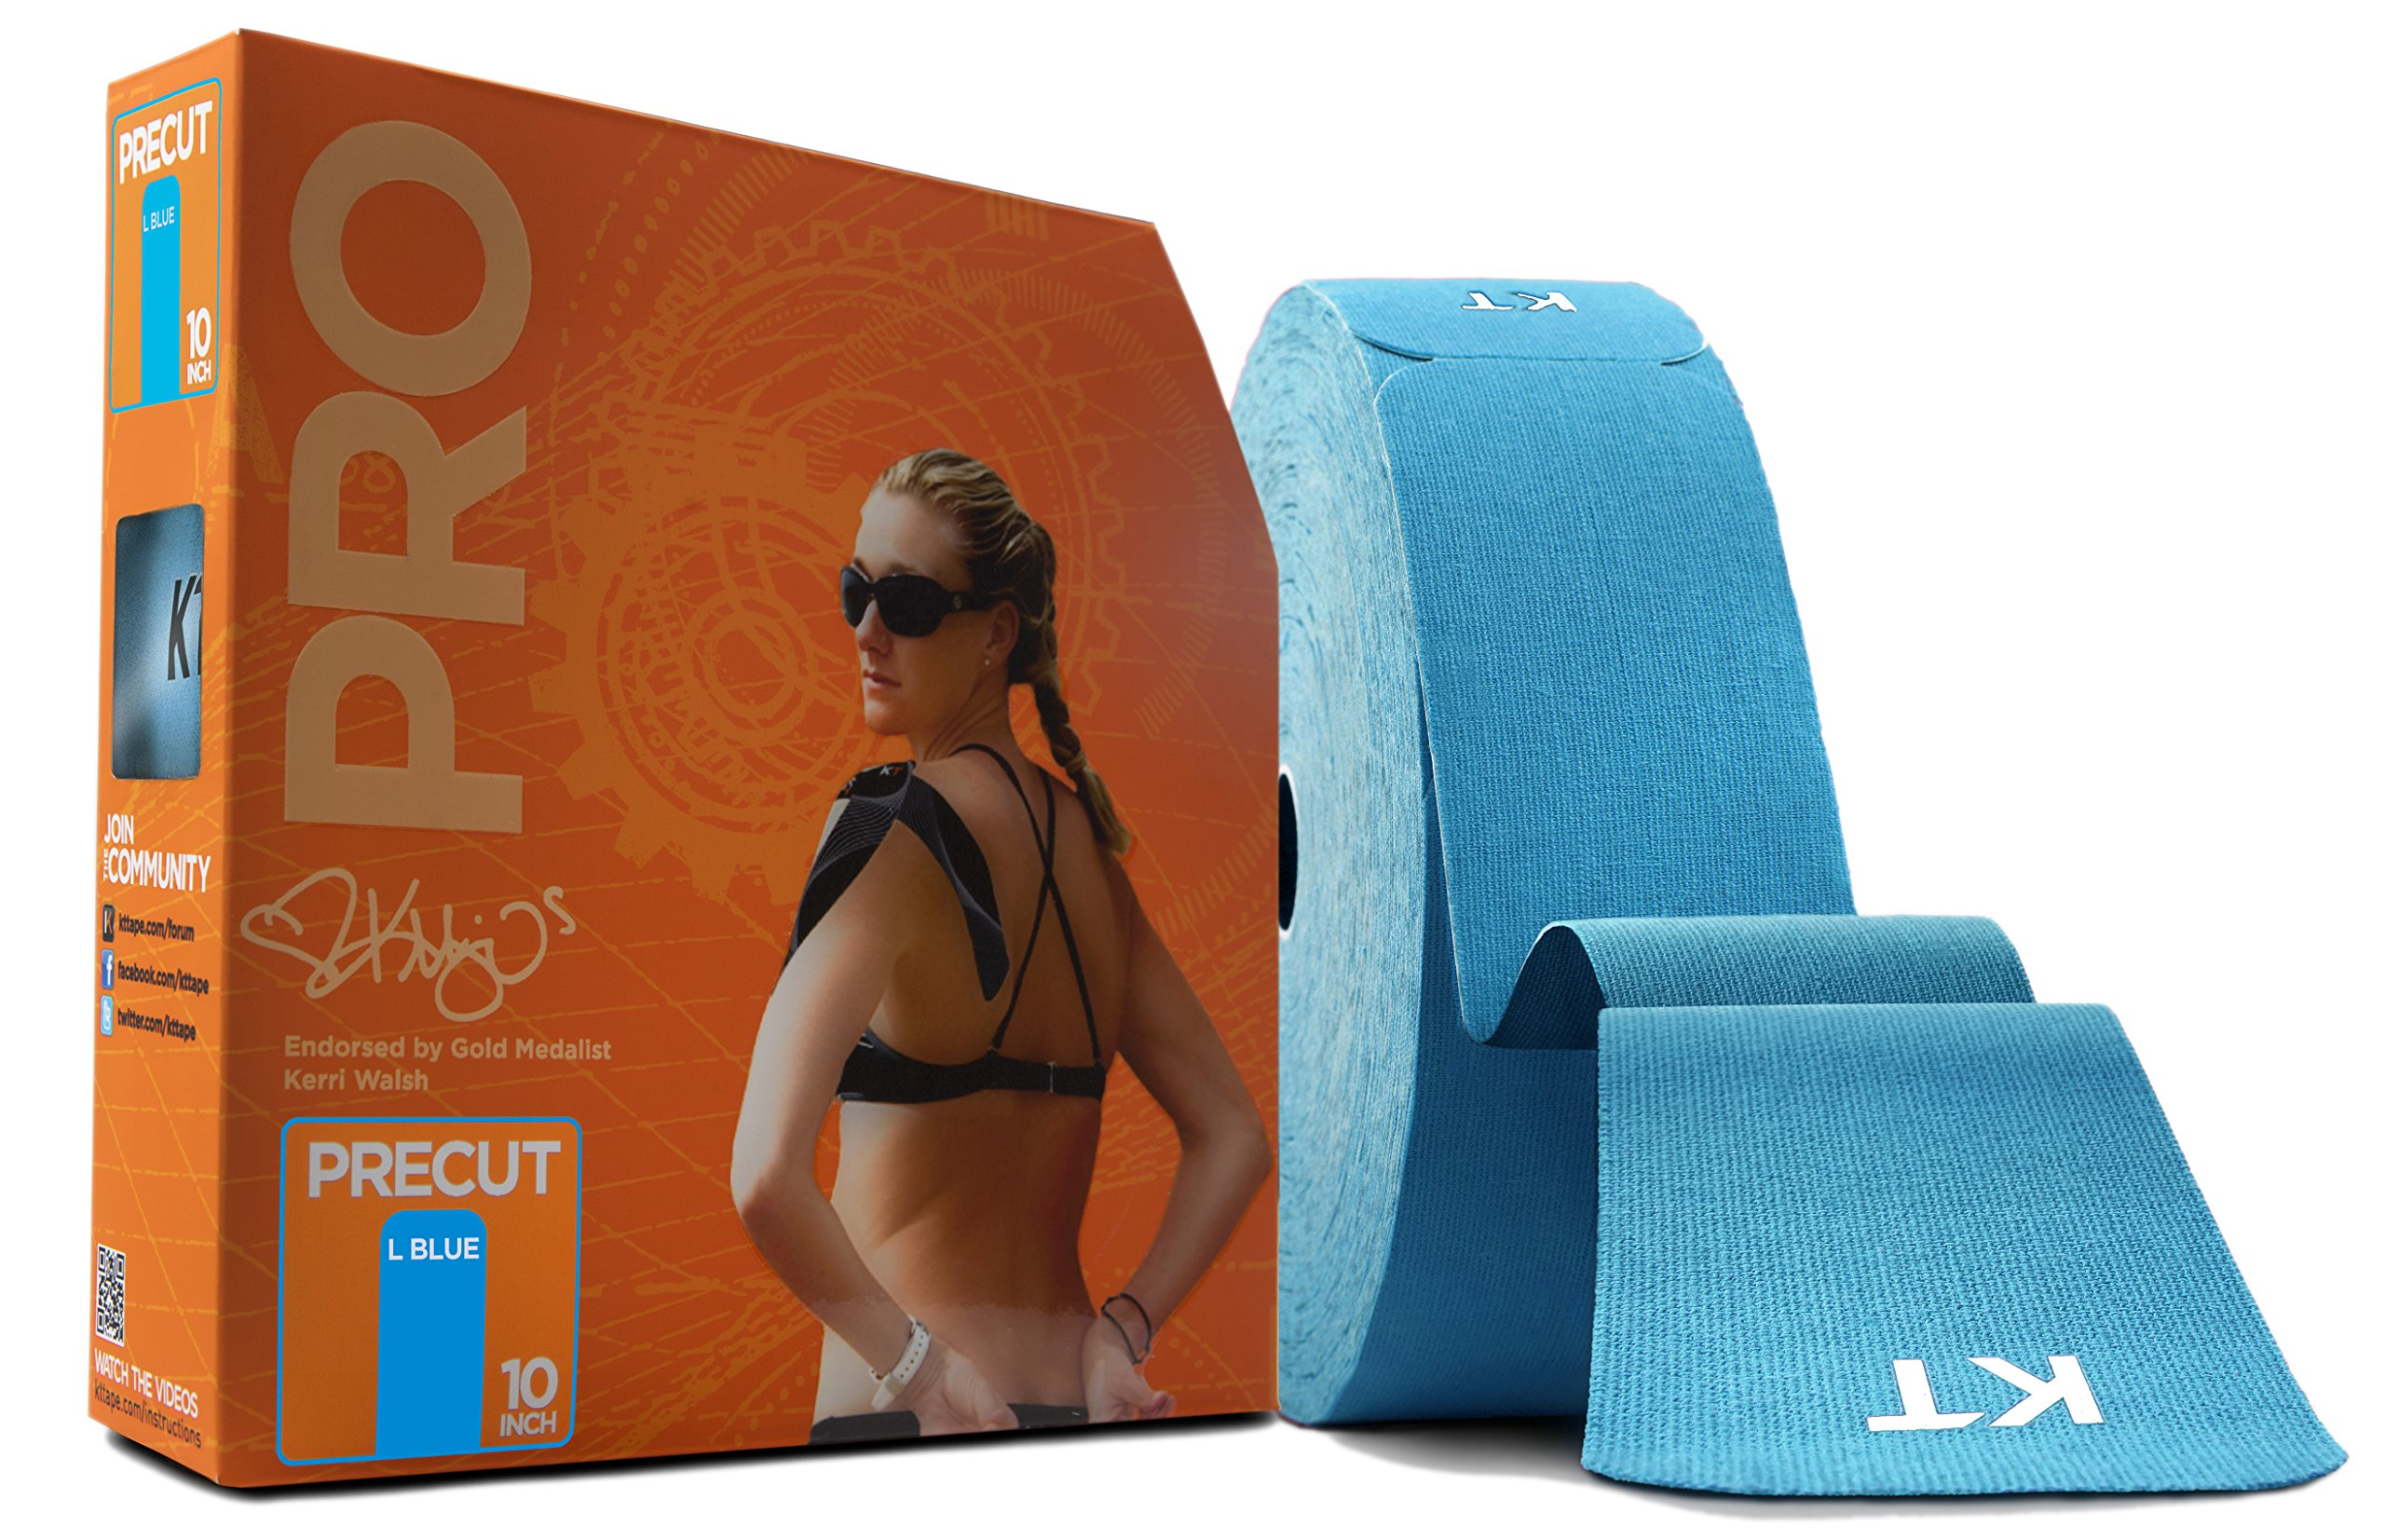 KT TAPE PRO Synthetic Elastic Kinesiology Therapeutic Tape, Jumbo 150 Precut 10 Inch Strips, Laser Blue